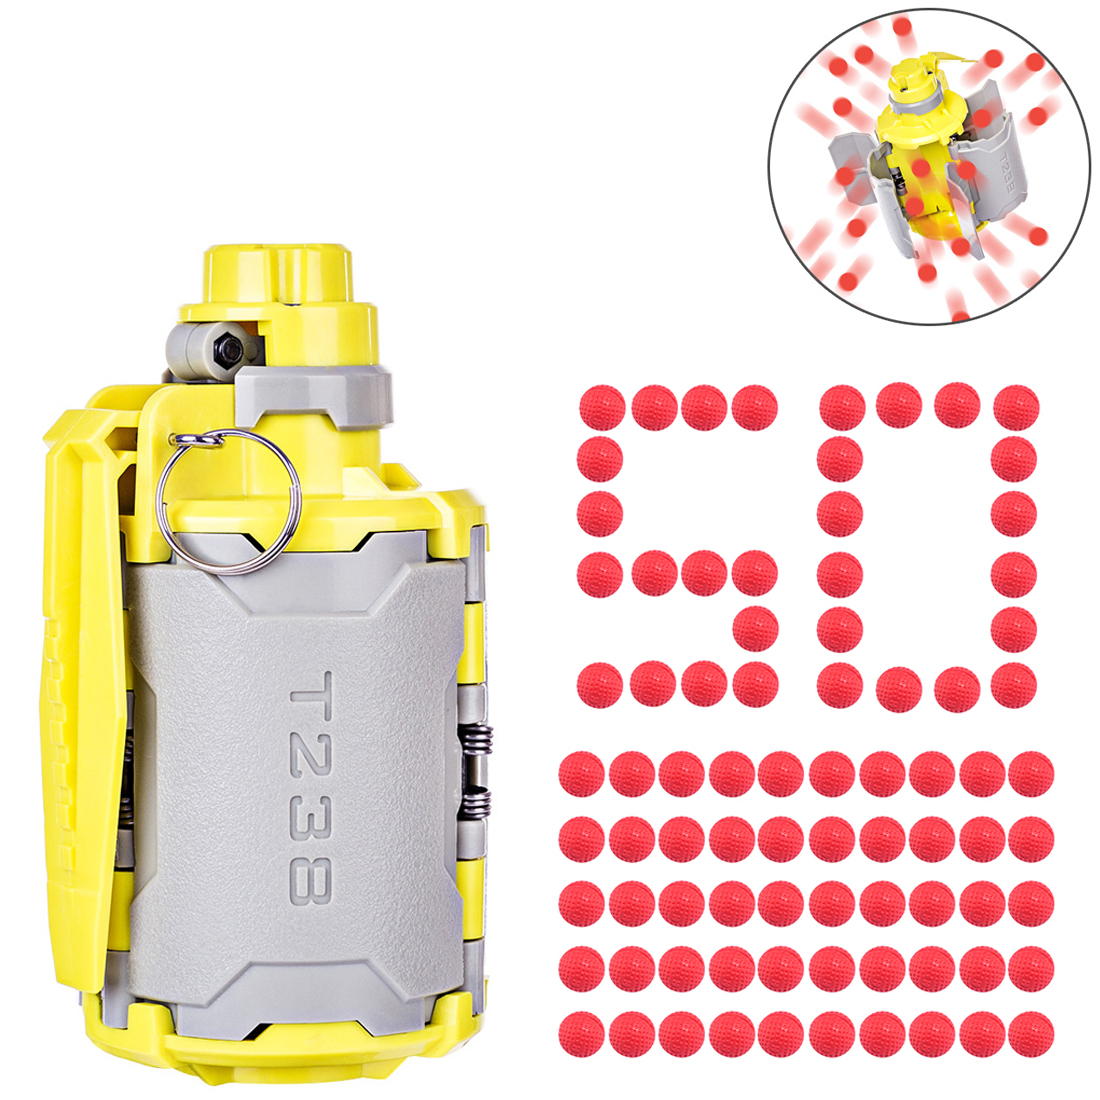 T238 V2 Large Capacity Bomb Toy With Time-delayed Function 10 Round Soft Foam Bullets For Games Gel Ball BBs Airsoft Wargame